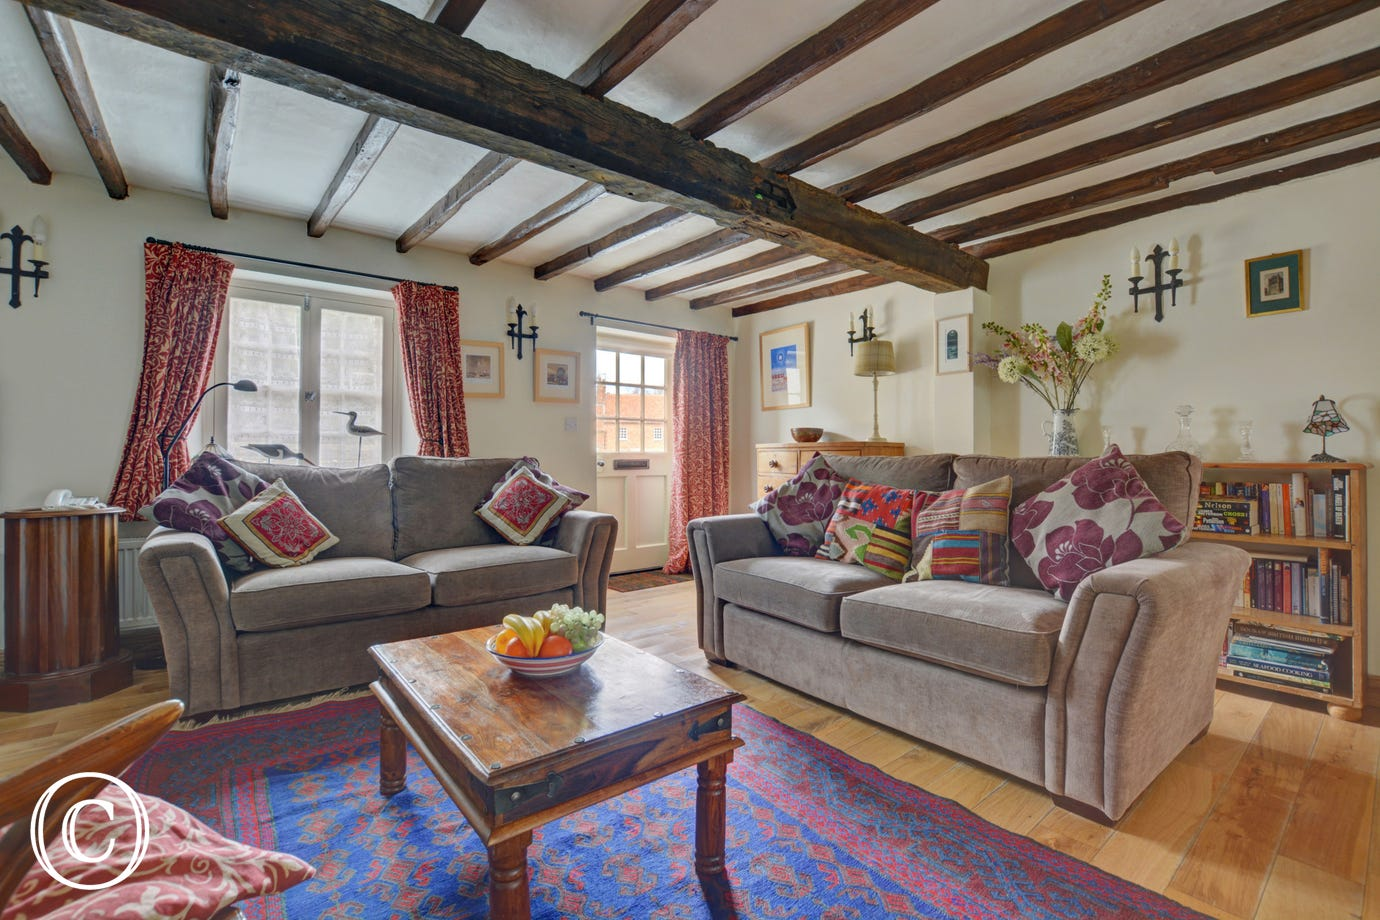 Cosy cottage sitting room, with beams. Decor in warm shades of cream reds and browns and furnished with 2 comfy sofas.